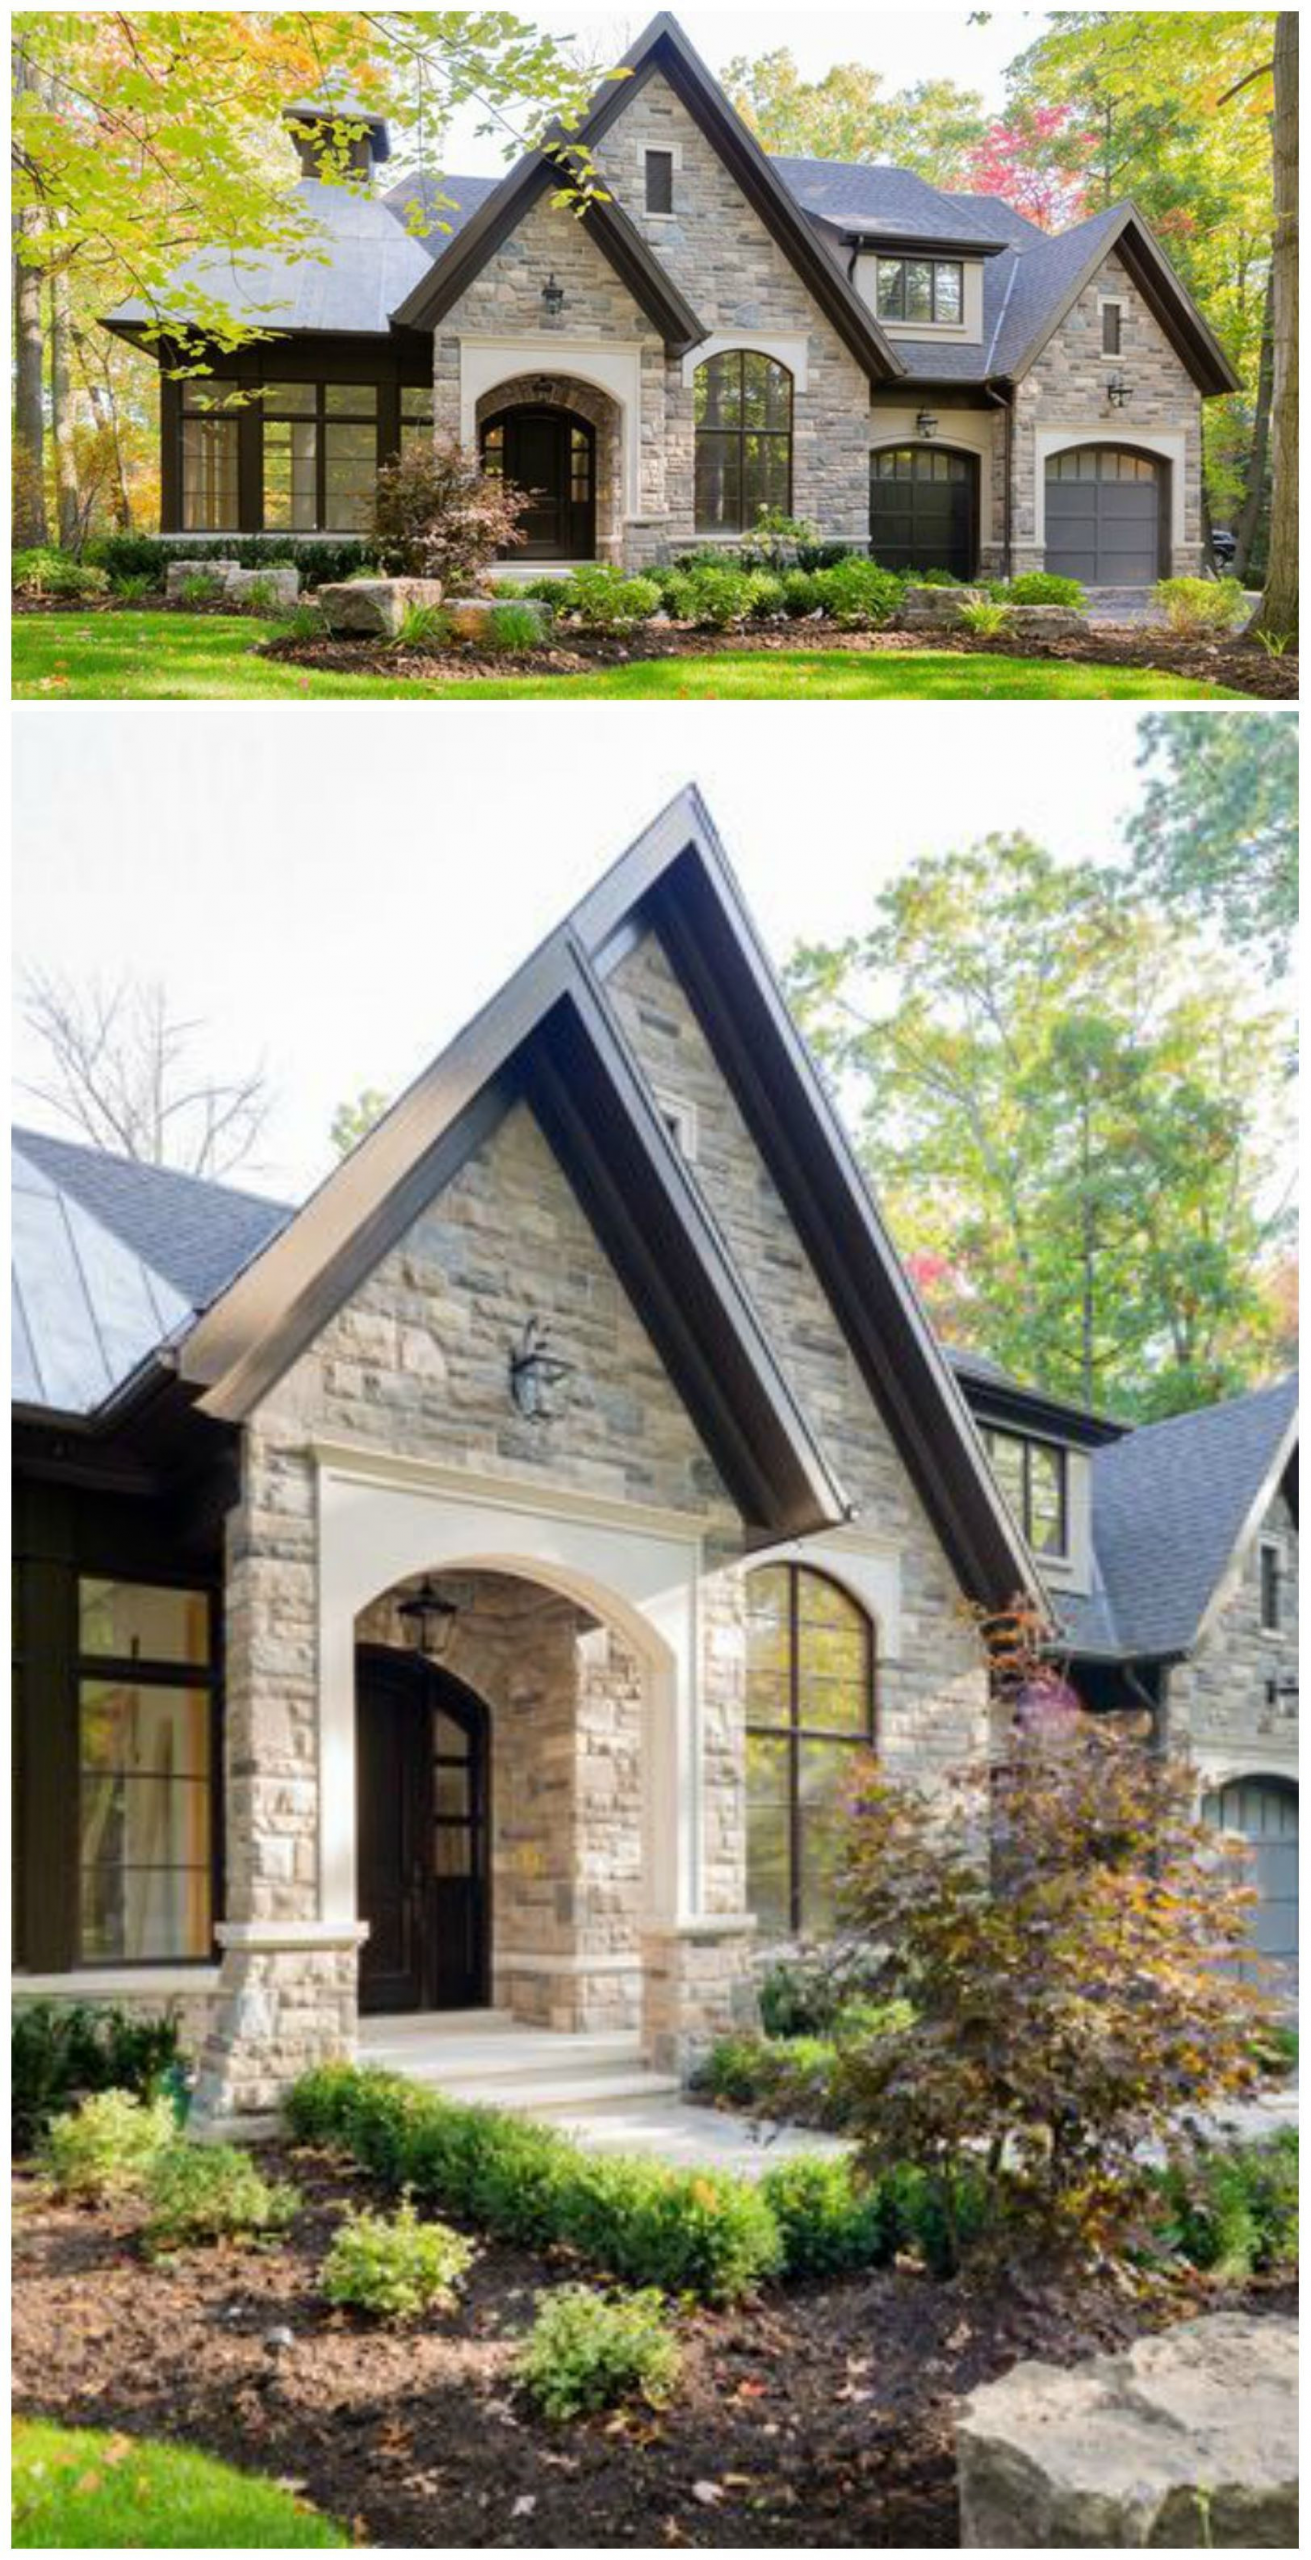 Luxury House Designs Exterior Traditional Home Beautiful Home By David Small Designs Stone Exterior Houses Small House Exteriors Dream House Exterior